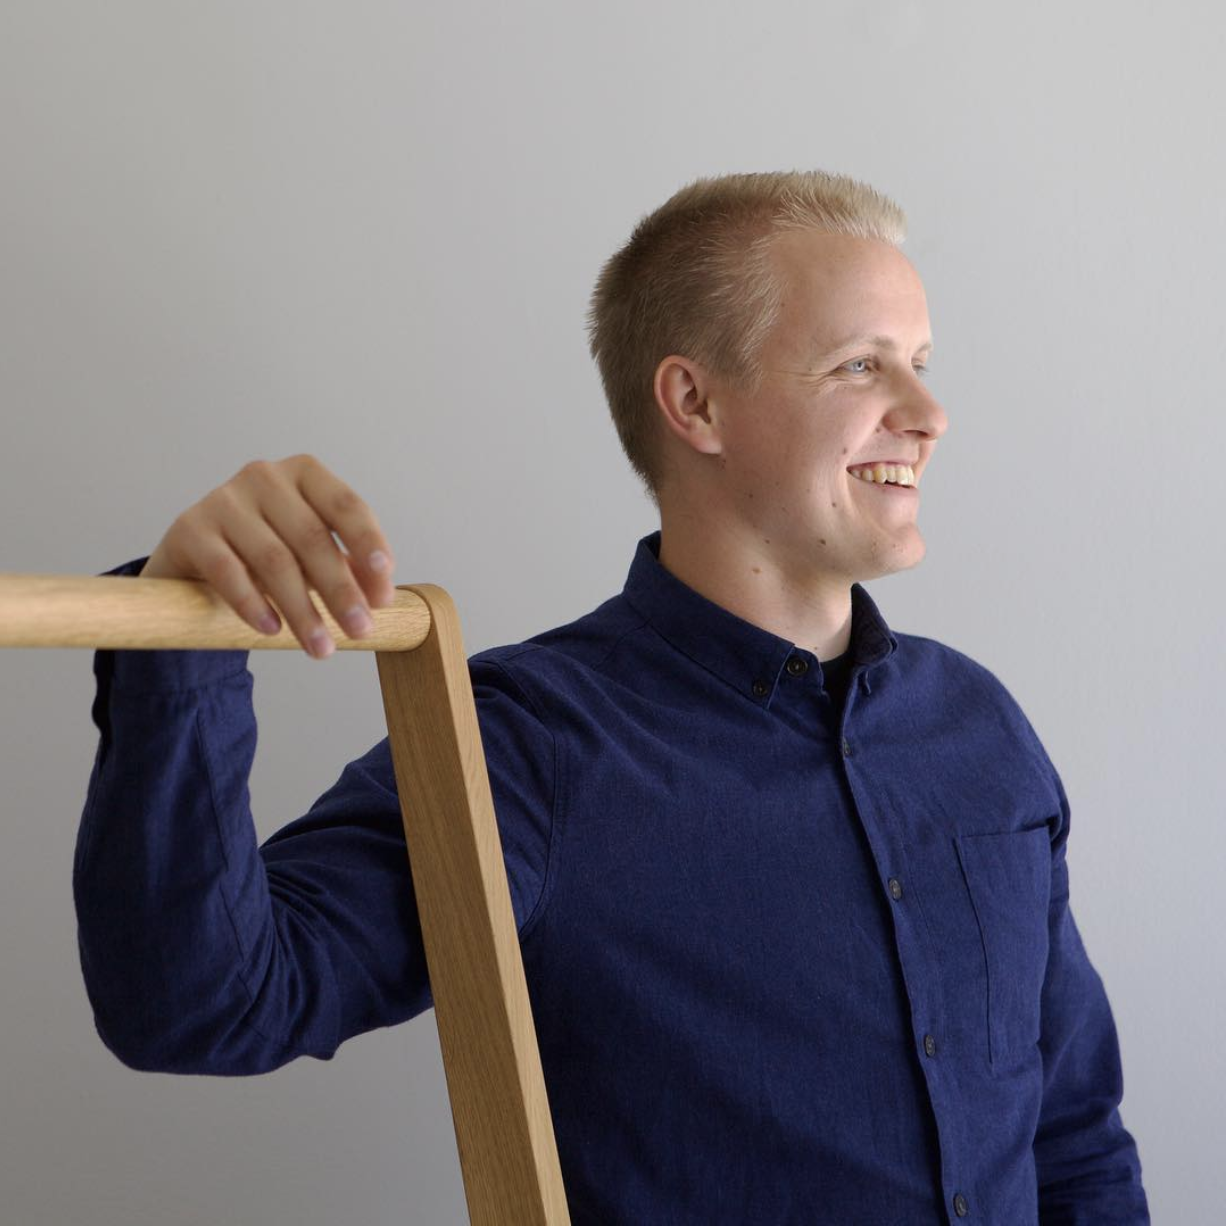 August 2018  Nikari x KFive+Kinnarps   A KFive+Kinnarps Designer Wins Young Designer of the Year 2018   Congratulations Antrei Hartikainen! Antrei is a young Finnish master cabinetmaker living in Fiskars. His work combines traditional carpentry techniques with modern designs. In 2015 he designed the Skandinavia Coat Rack for Nikari.